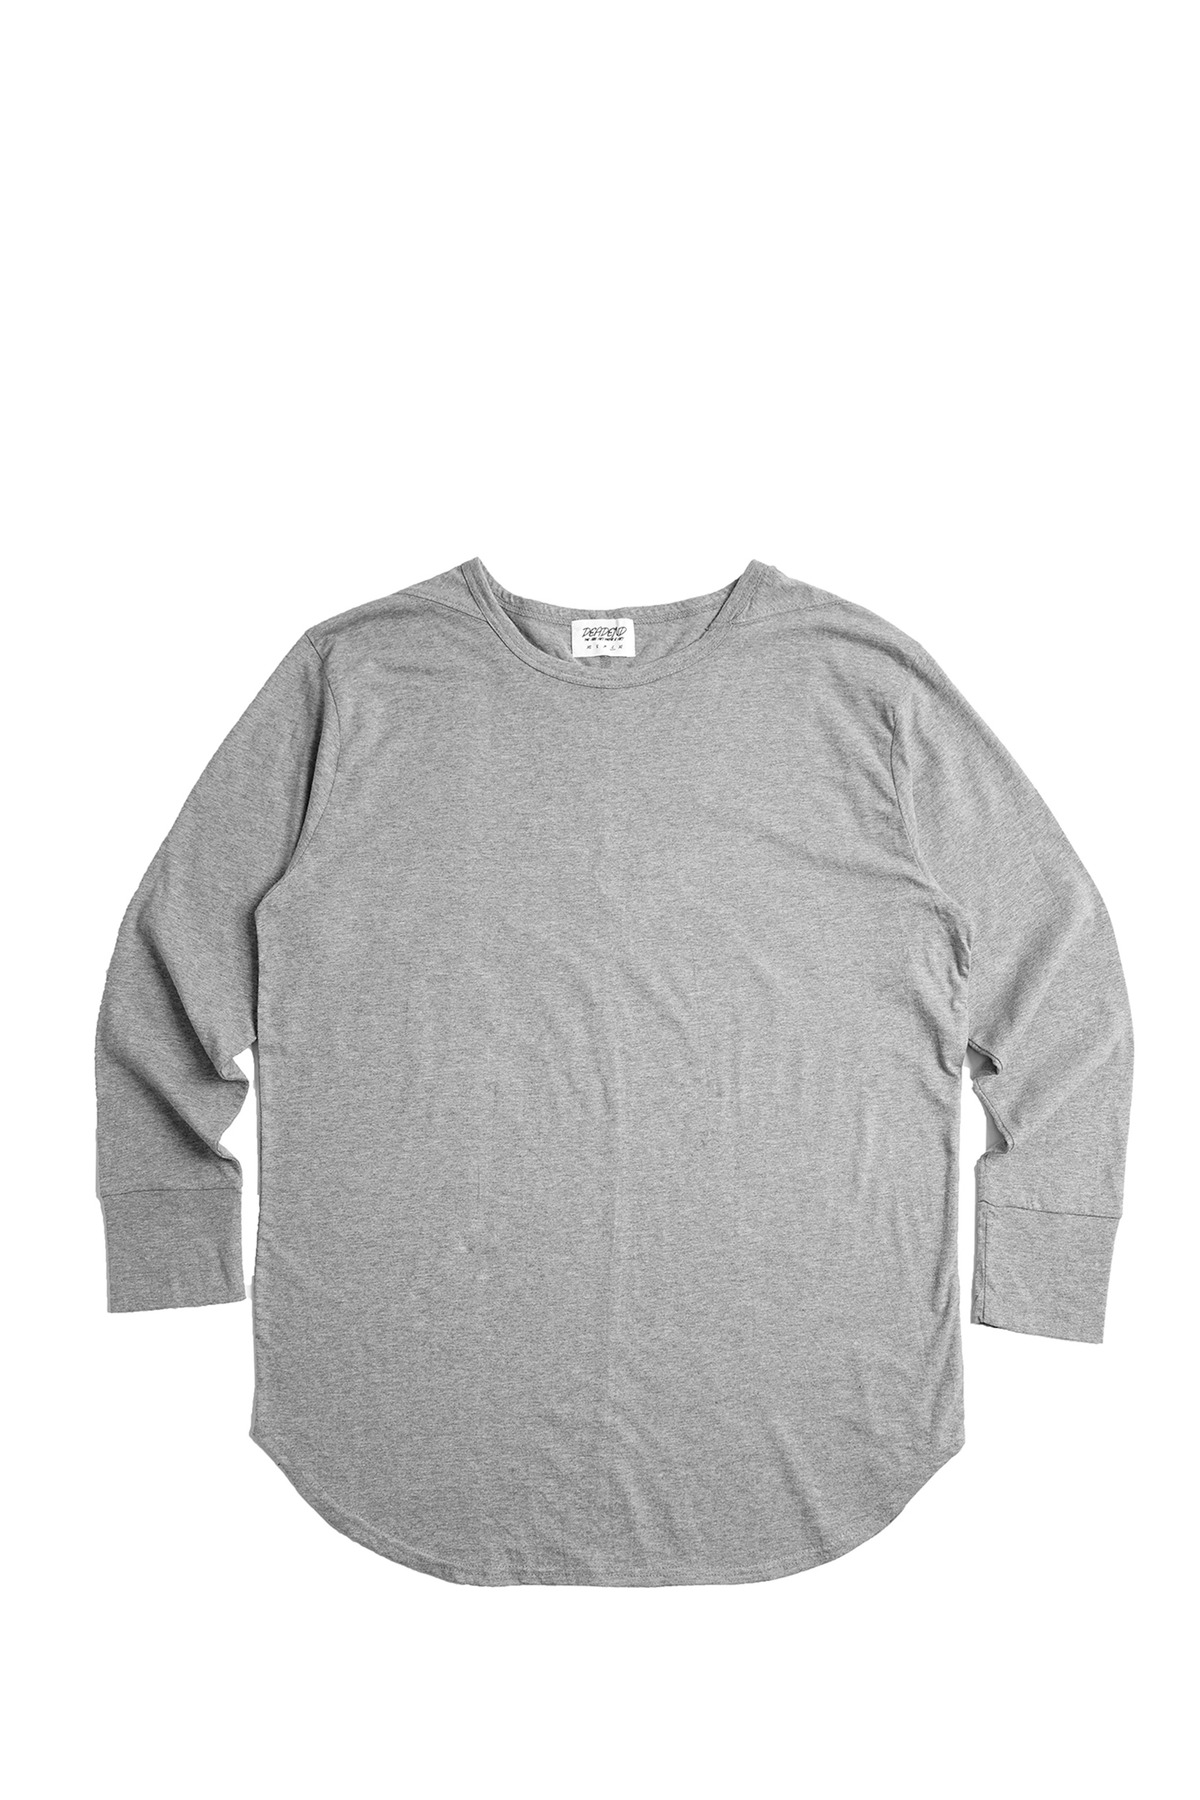 GREY IN OVER SLEEVE